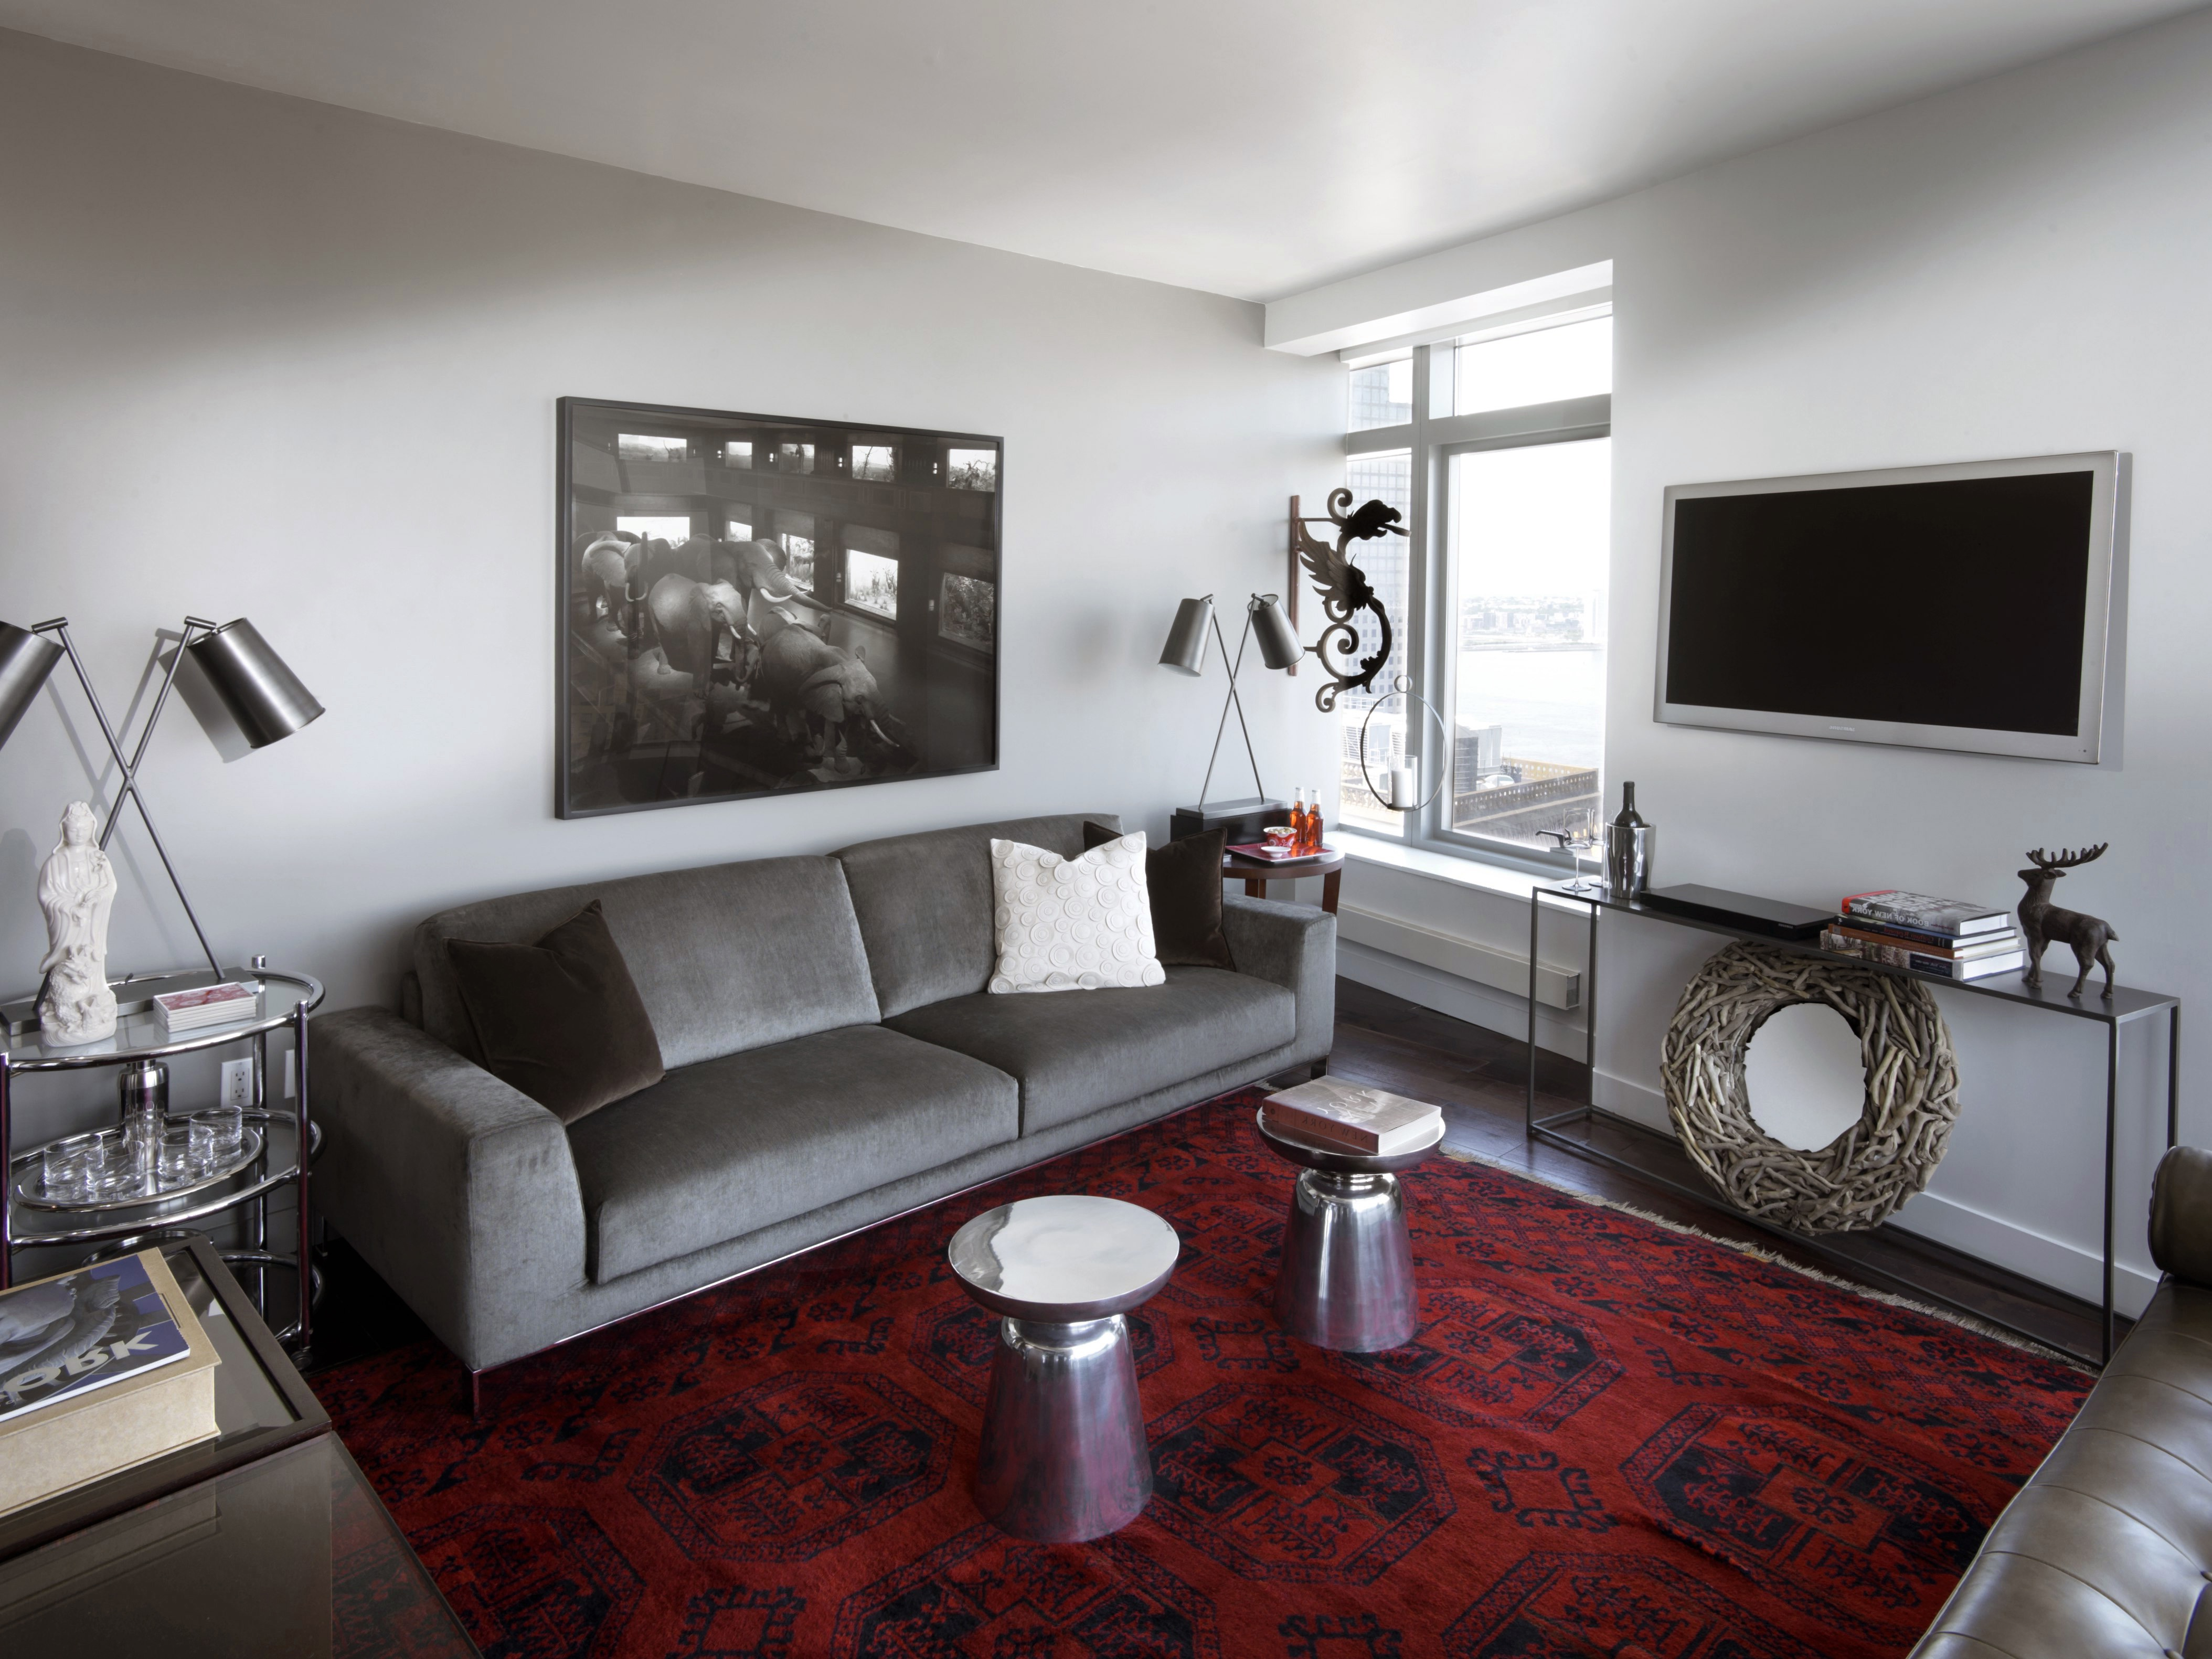 Urban Apartment Living Room With Ethnical Accents (Image 15 of 15)